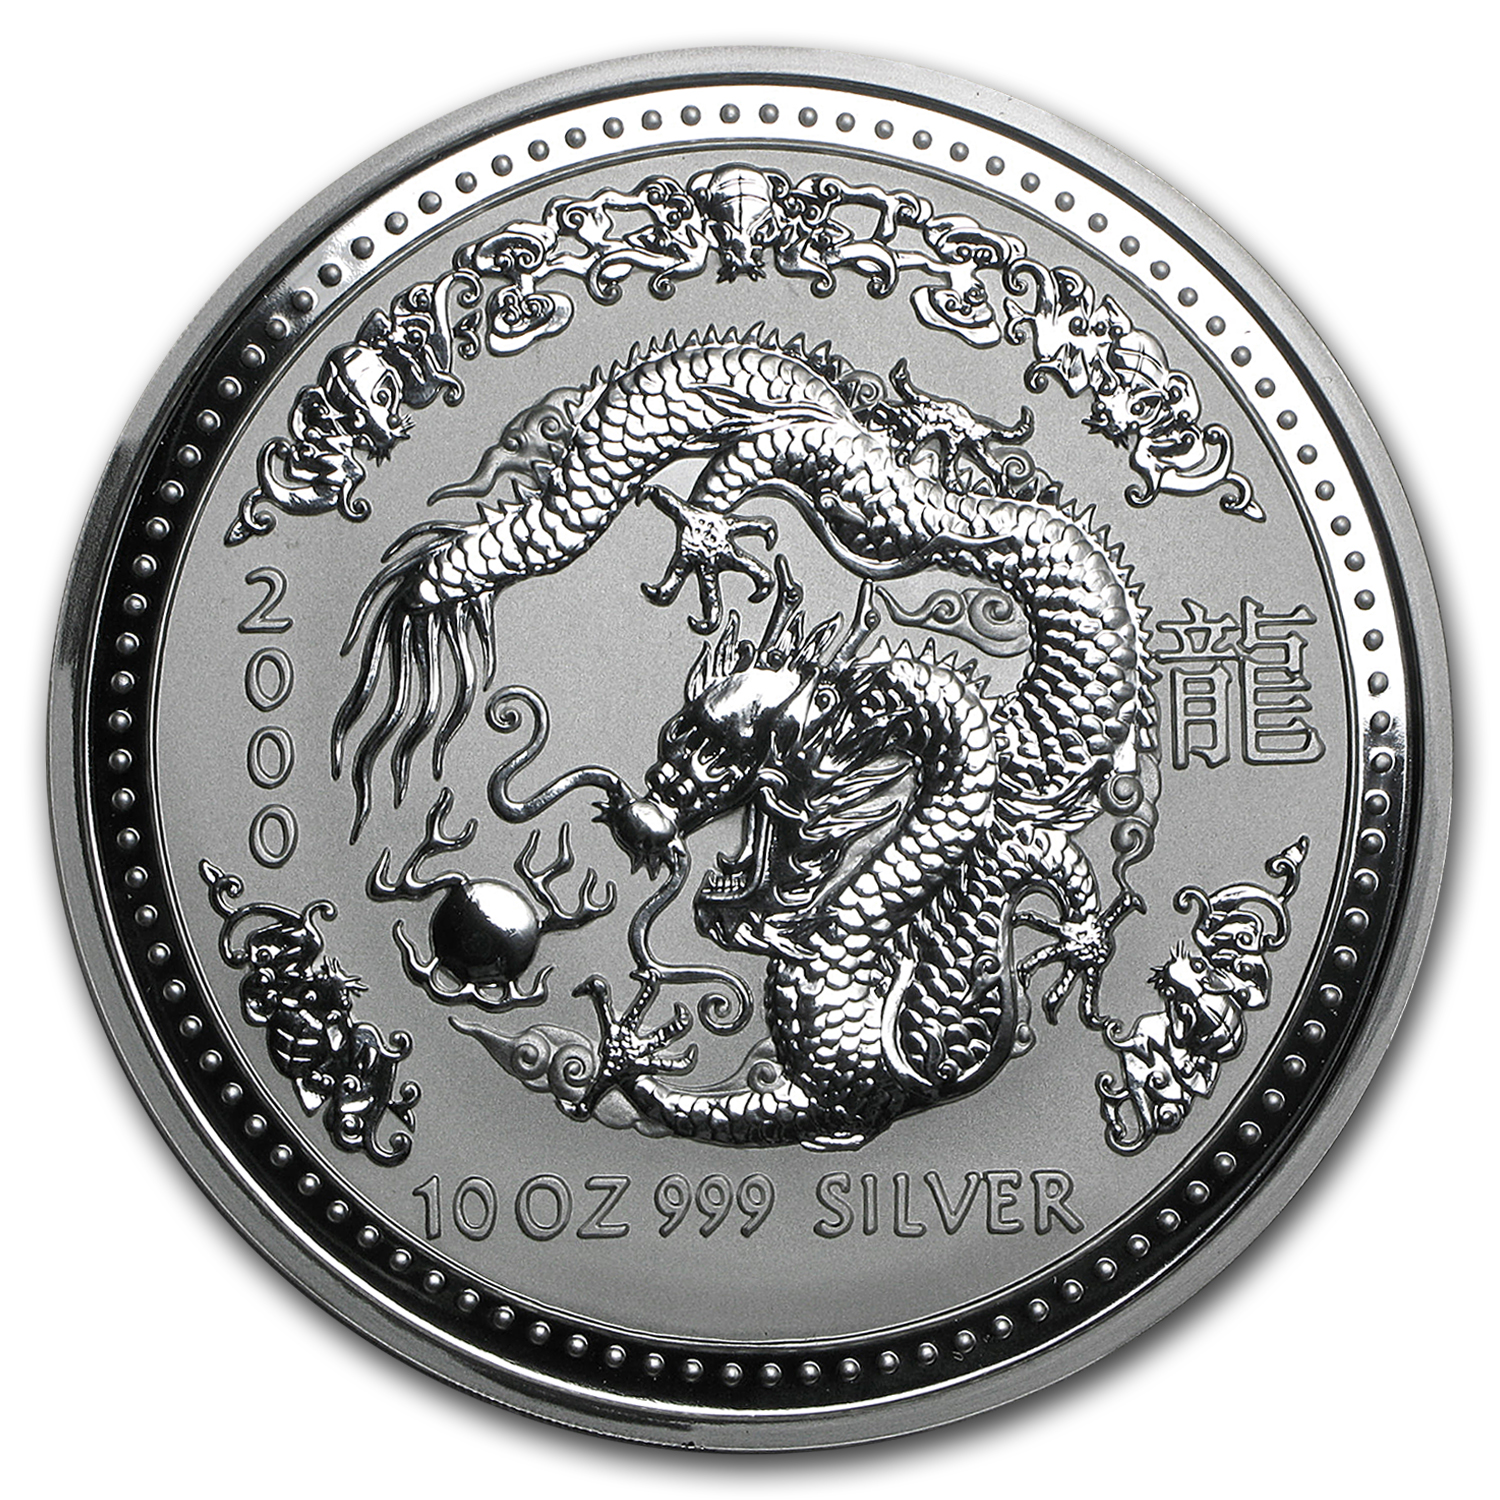 2000 10 oz Silver Australian Year of the Dragon BU